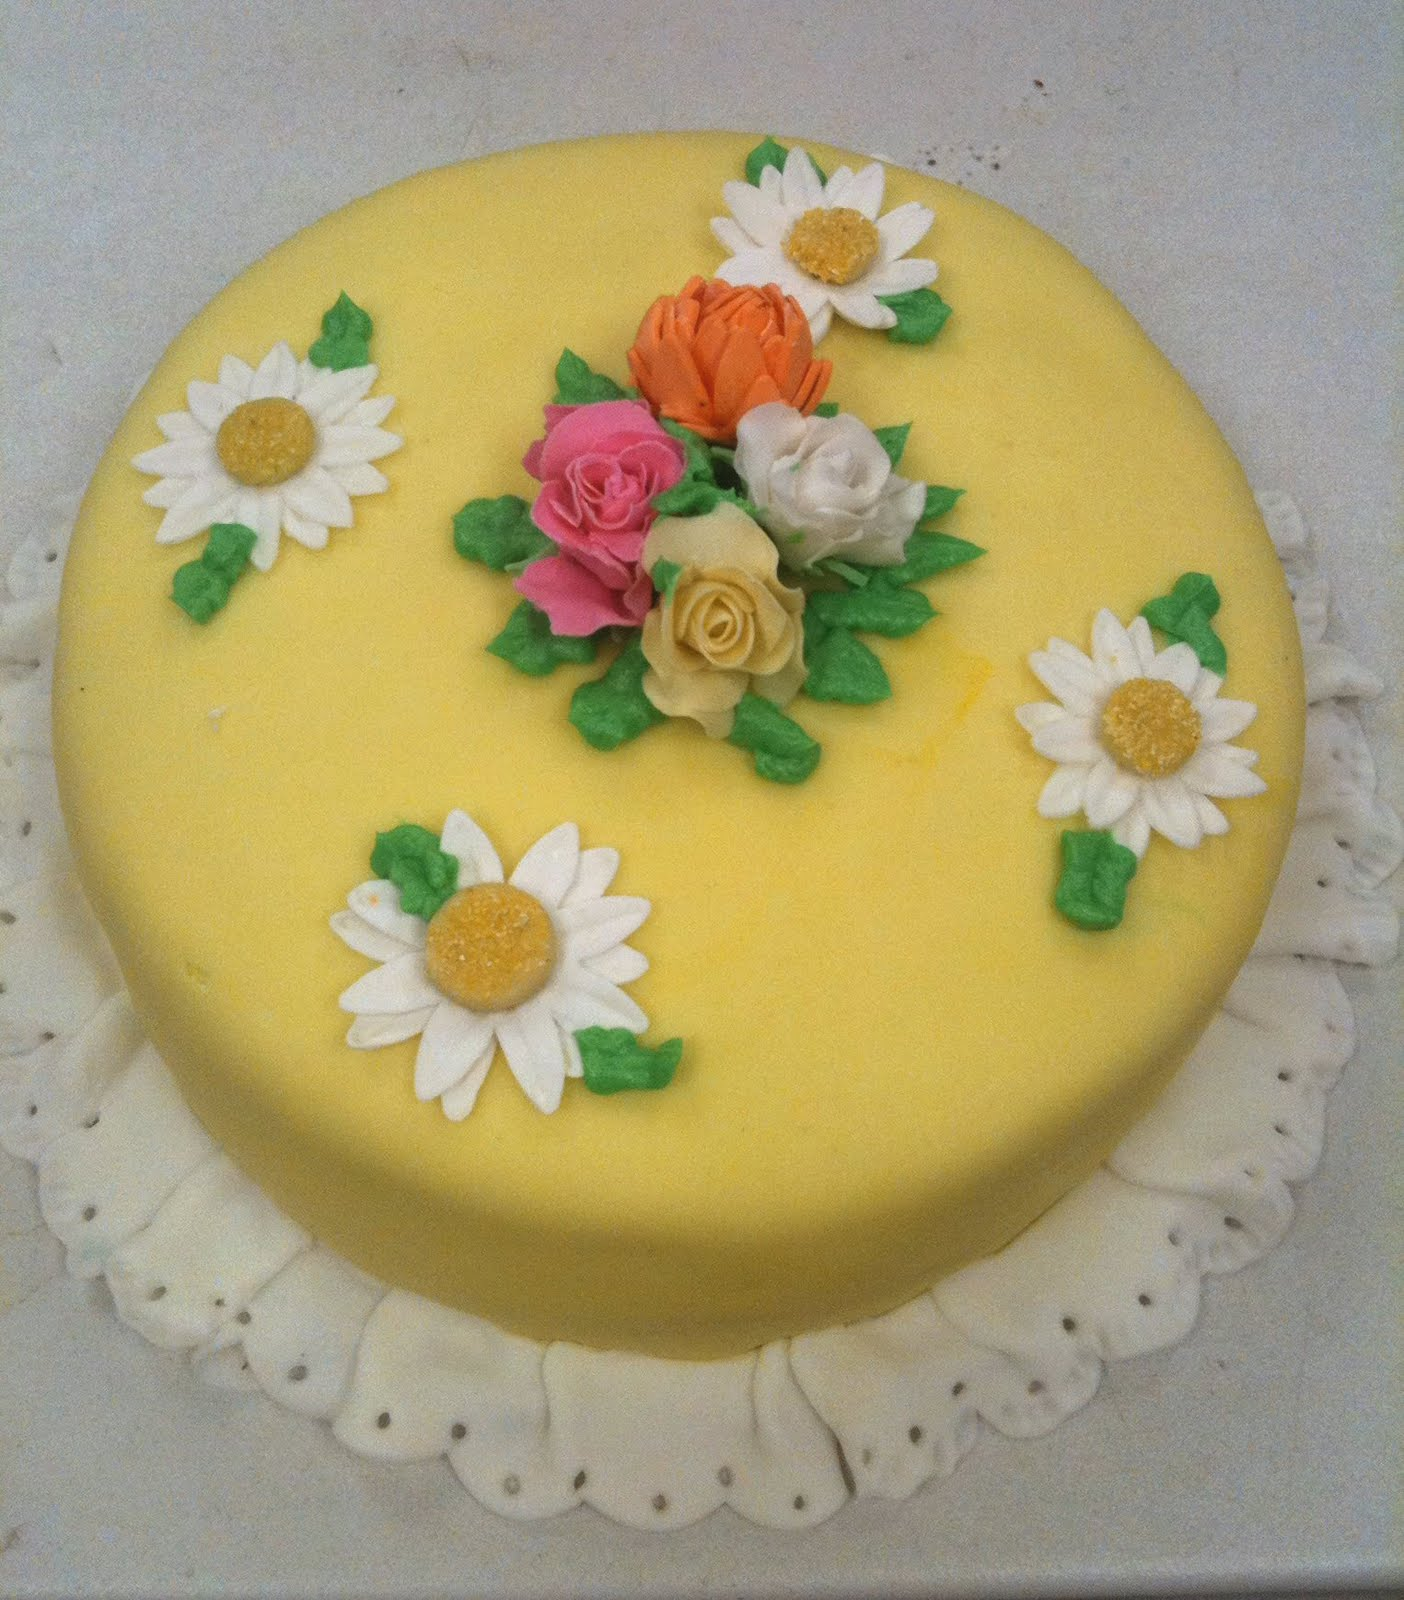 Fondant Cake Decorating Classes Michaels : Cake Decorating by Sonia: May 2011 - Gum Paste & Fondant ...